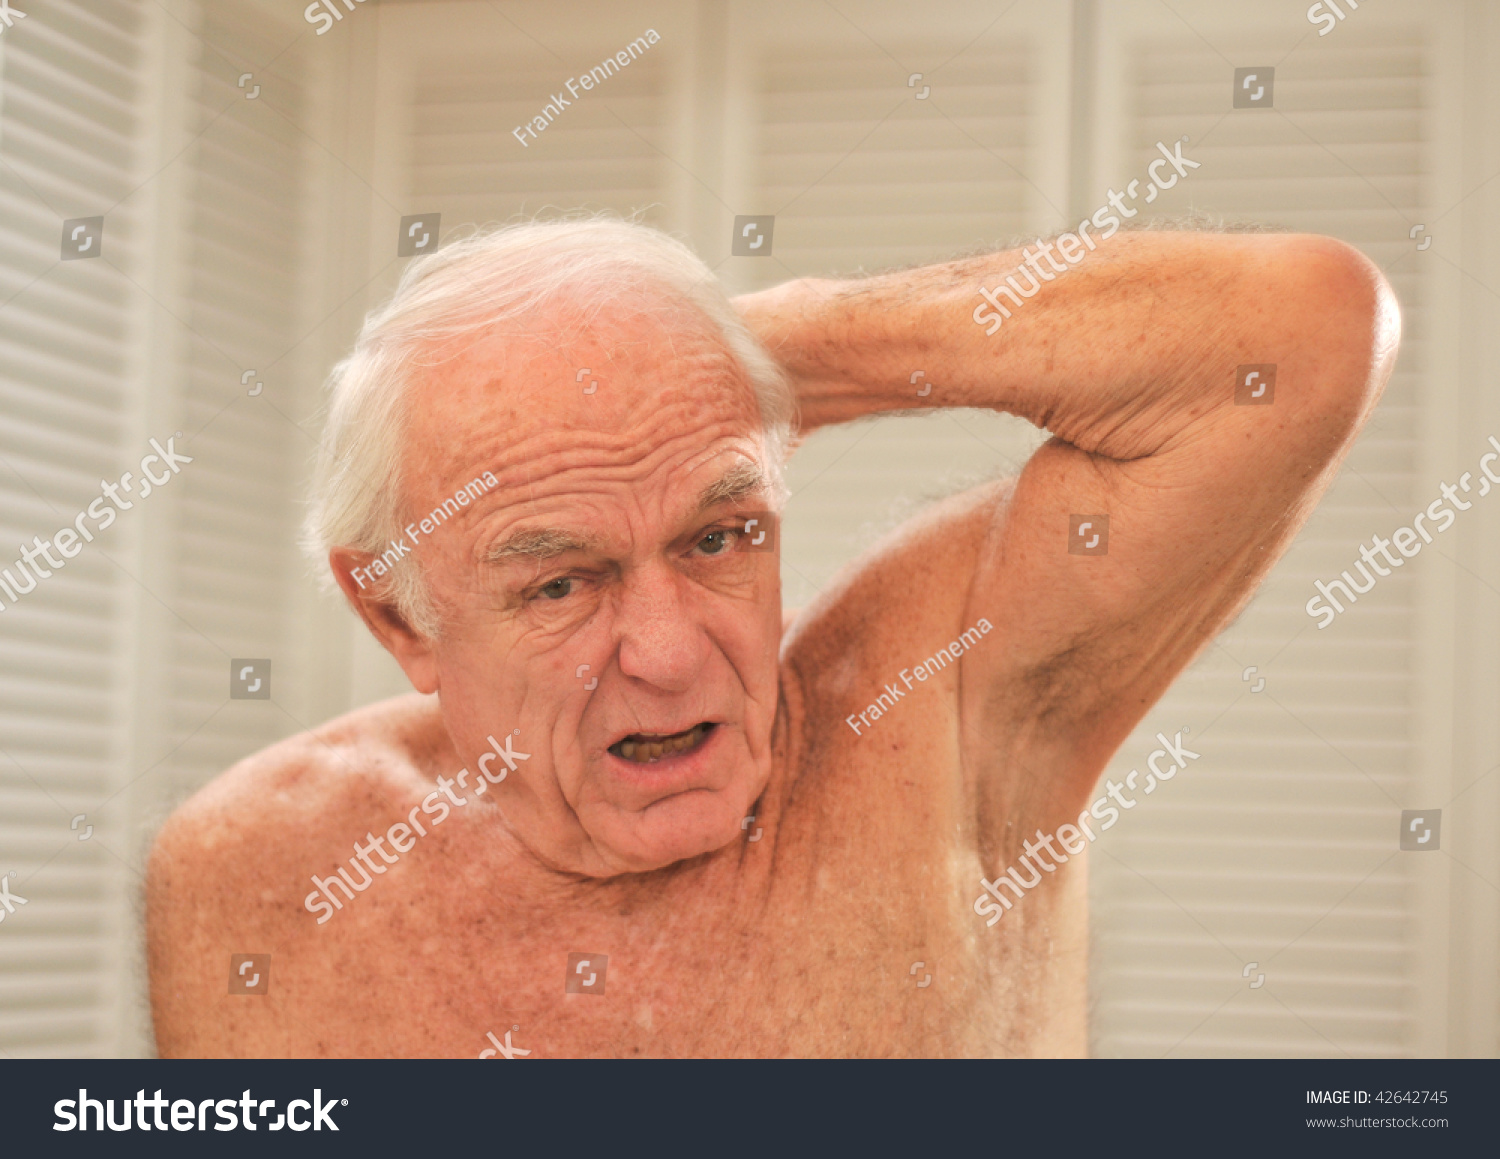 Adult smelly armpits even after shower